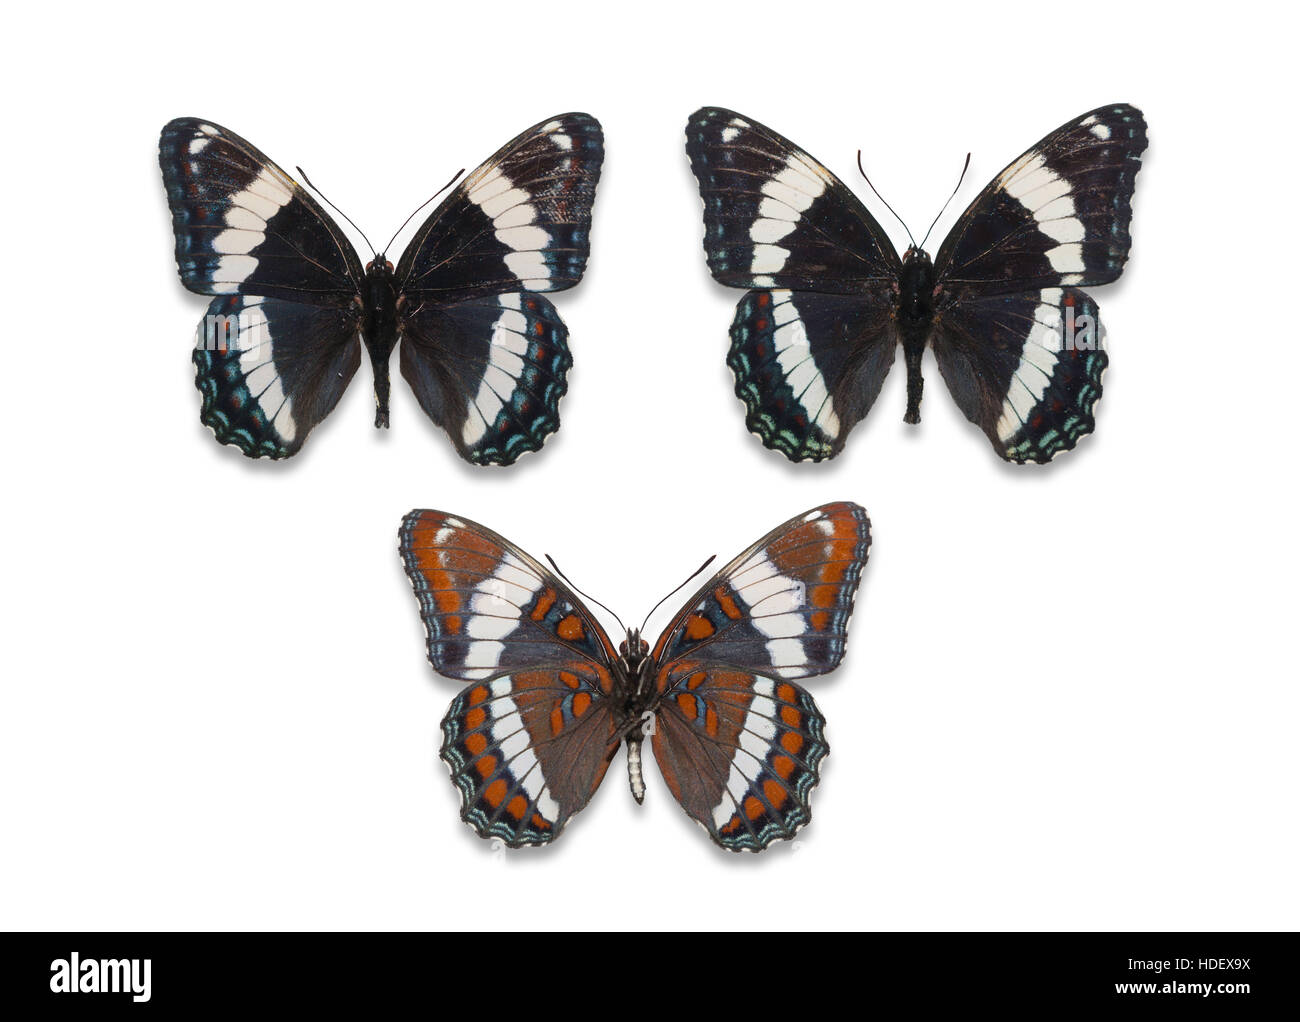 Three pinned and spread cutout White Admiral butterflies (Limenitis arthemis arthemis), dorsal and ventral views - Stock Image